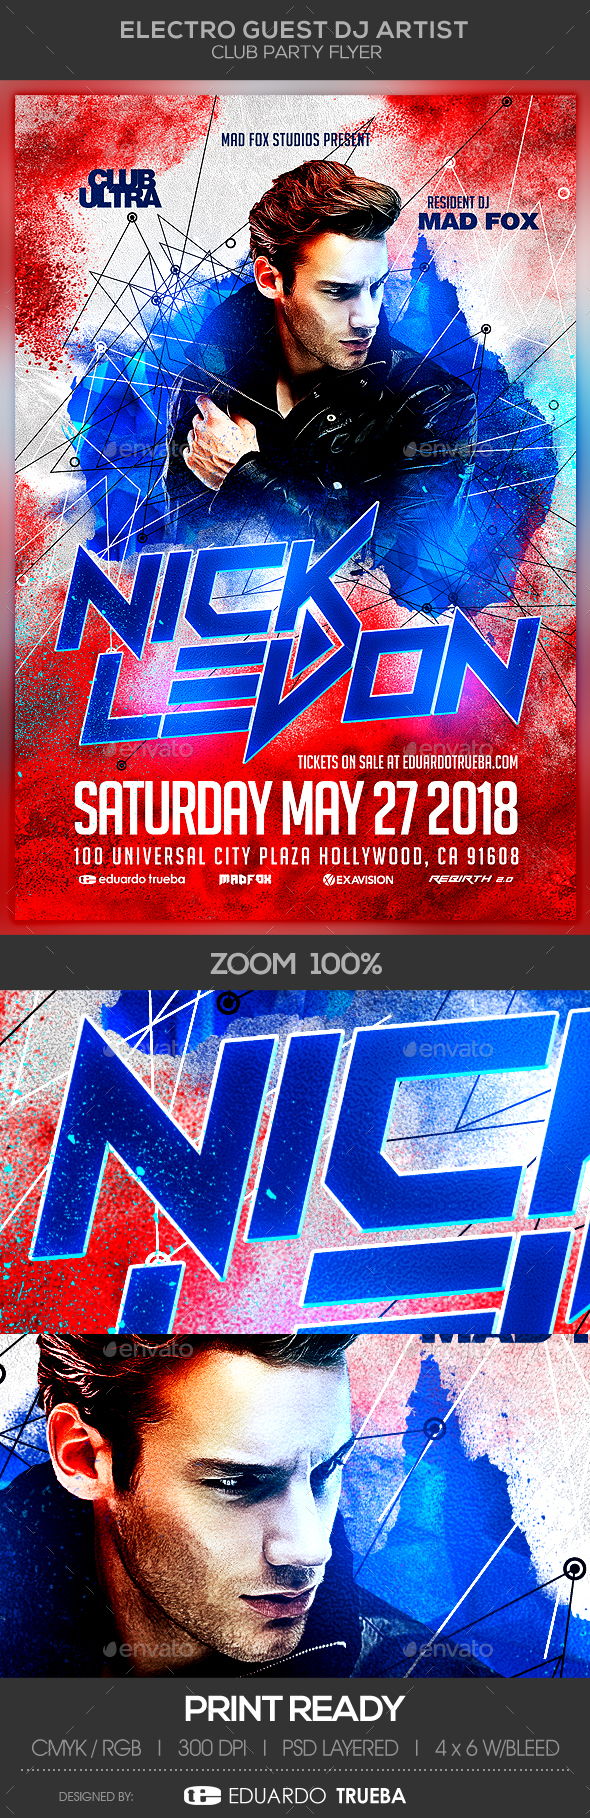 GraphicRiver Electro Guest Dj Artist Club Party Flyer 20941927